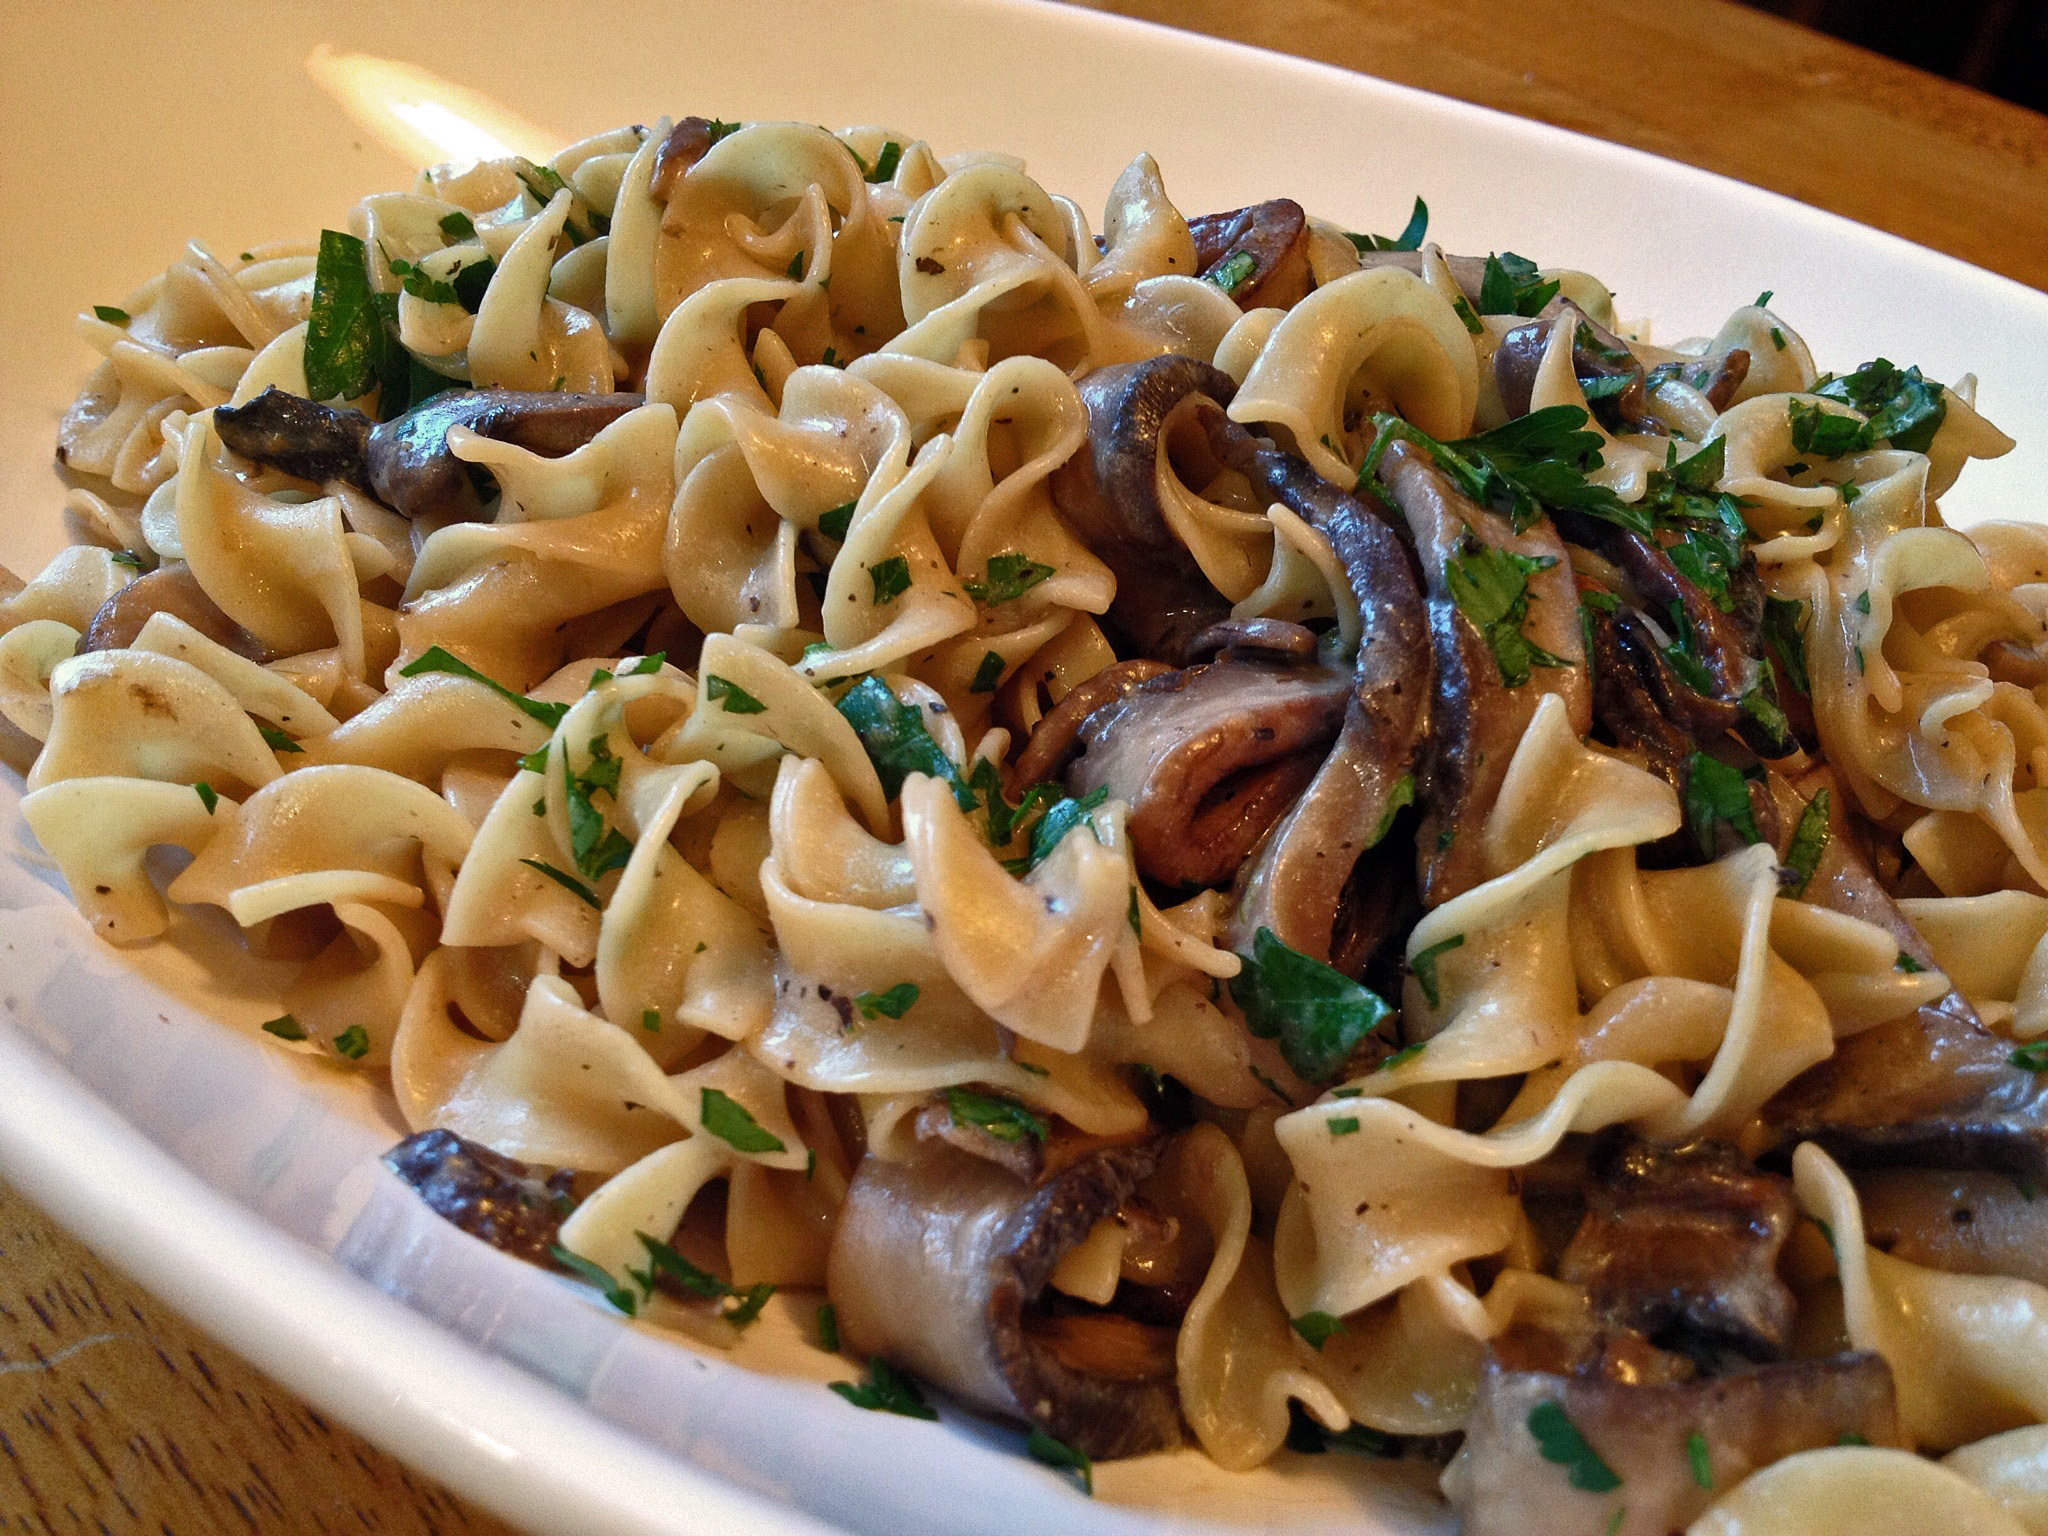 MUSHROOM STROGANOFF WITH GOAT CHEESE